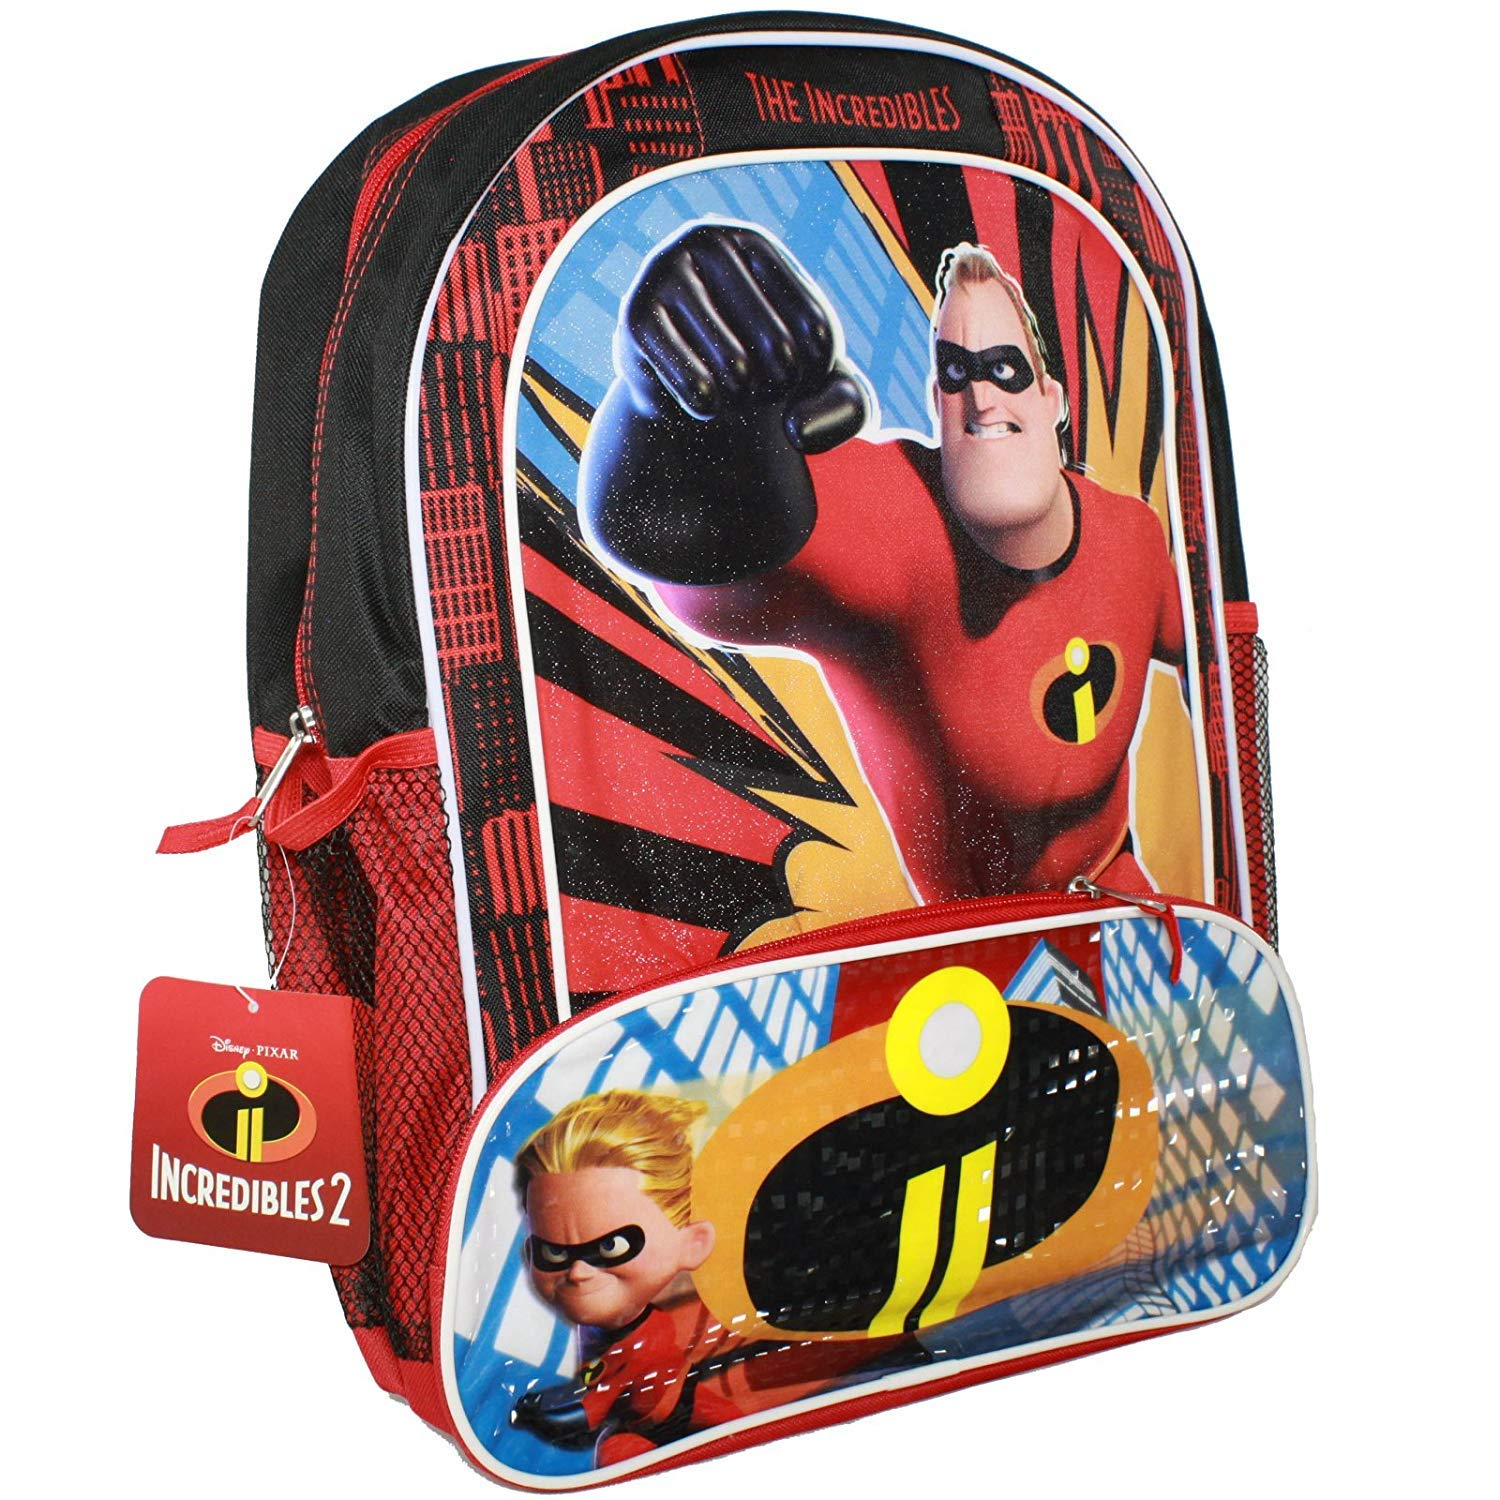 Disney Pixar The Incredibles 2 Movie Dash and Mr. Incredible Book Bag for Back to School  16 Inches